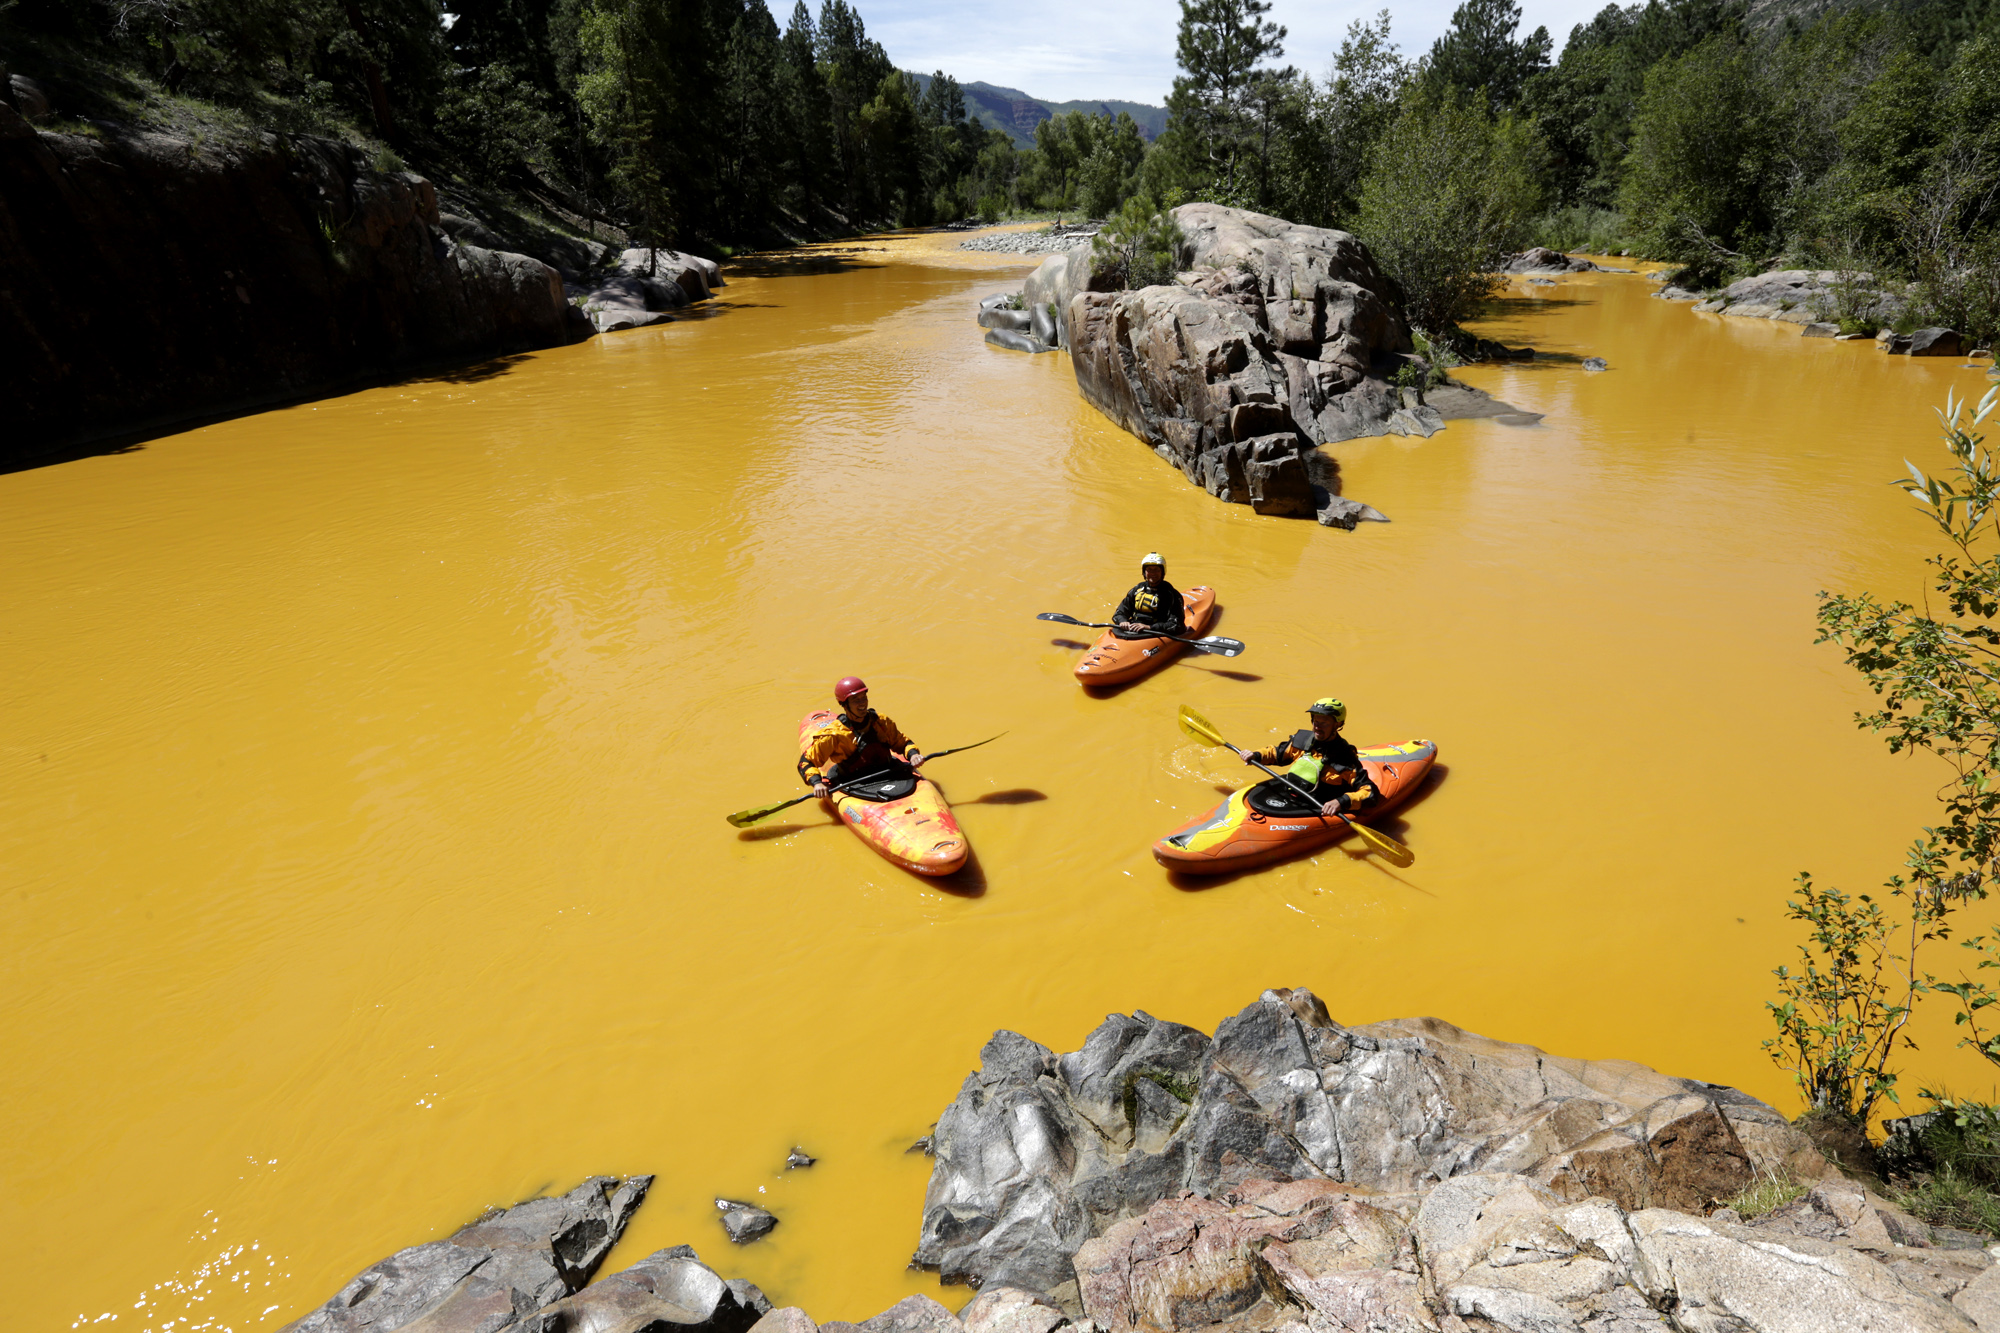 New Mexico is suing the state of Colorado, saying its northern neighbor should be held responsible for the contamination from the massive Gold King Mine waste spill